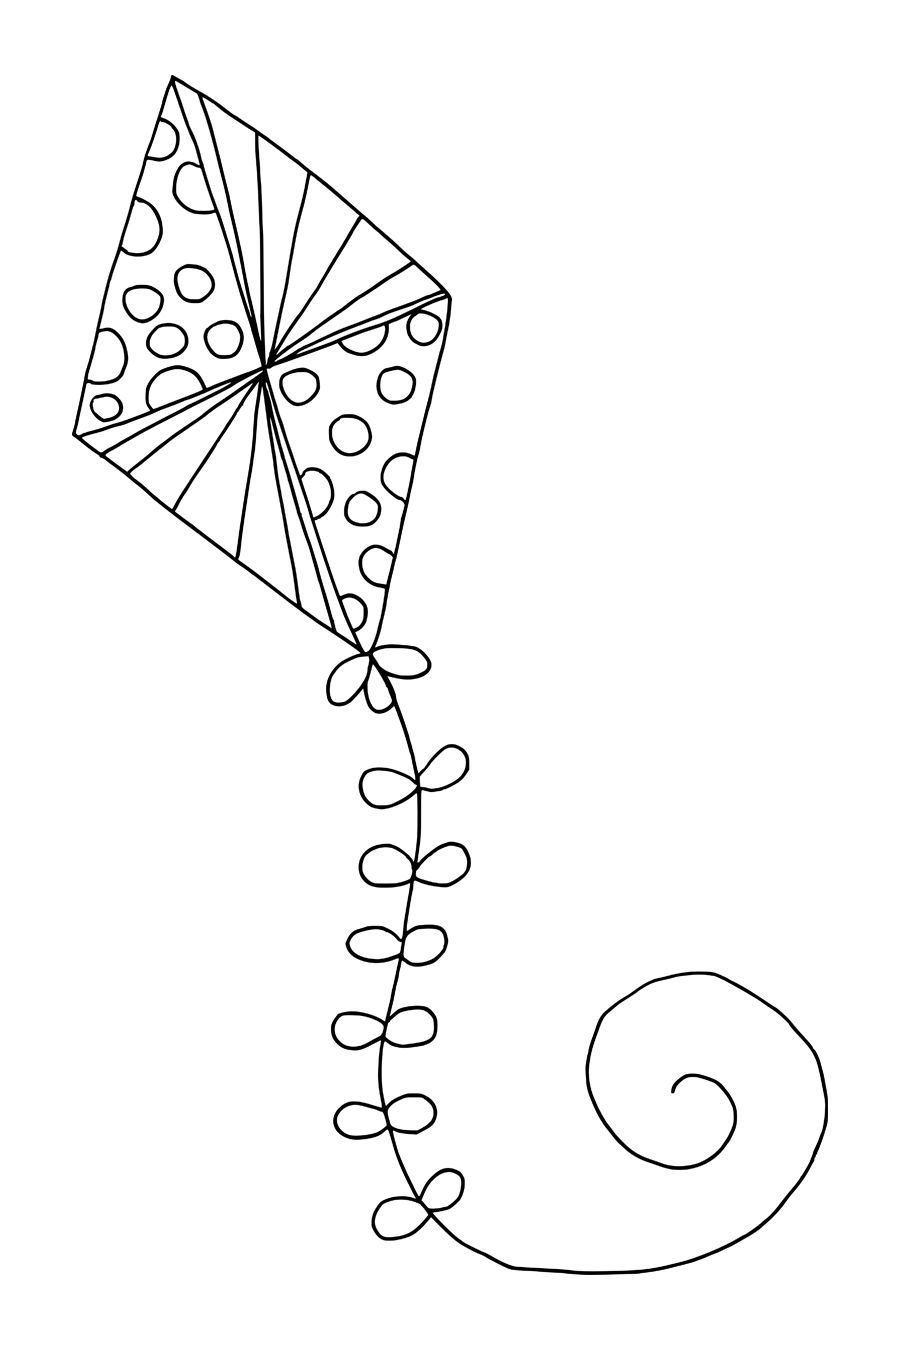 Kite Coloring Pages Free Large Images Zoo Coloring Pages Coloring Pages Fall Coloring Pages